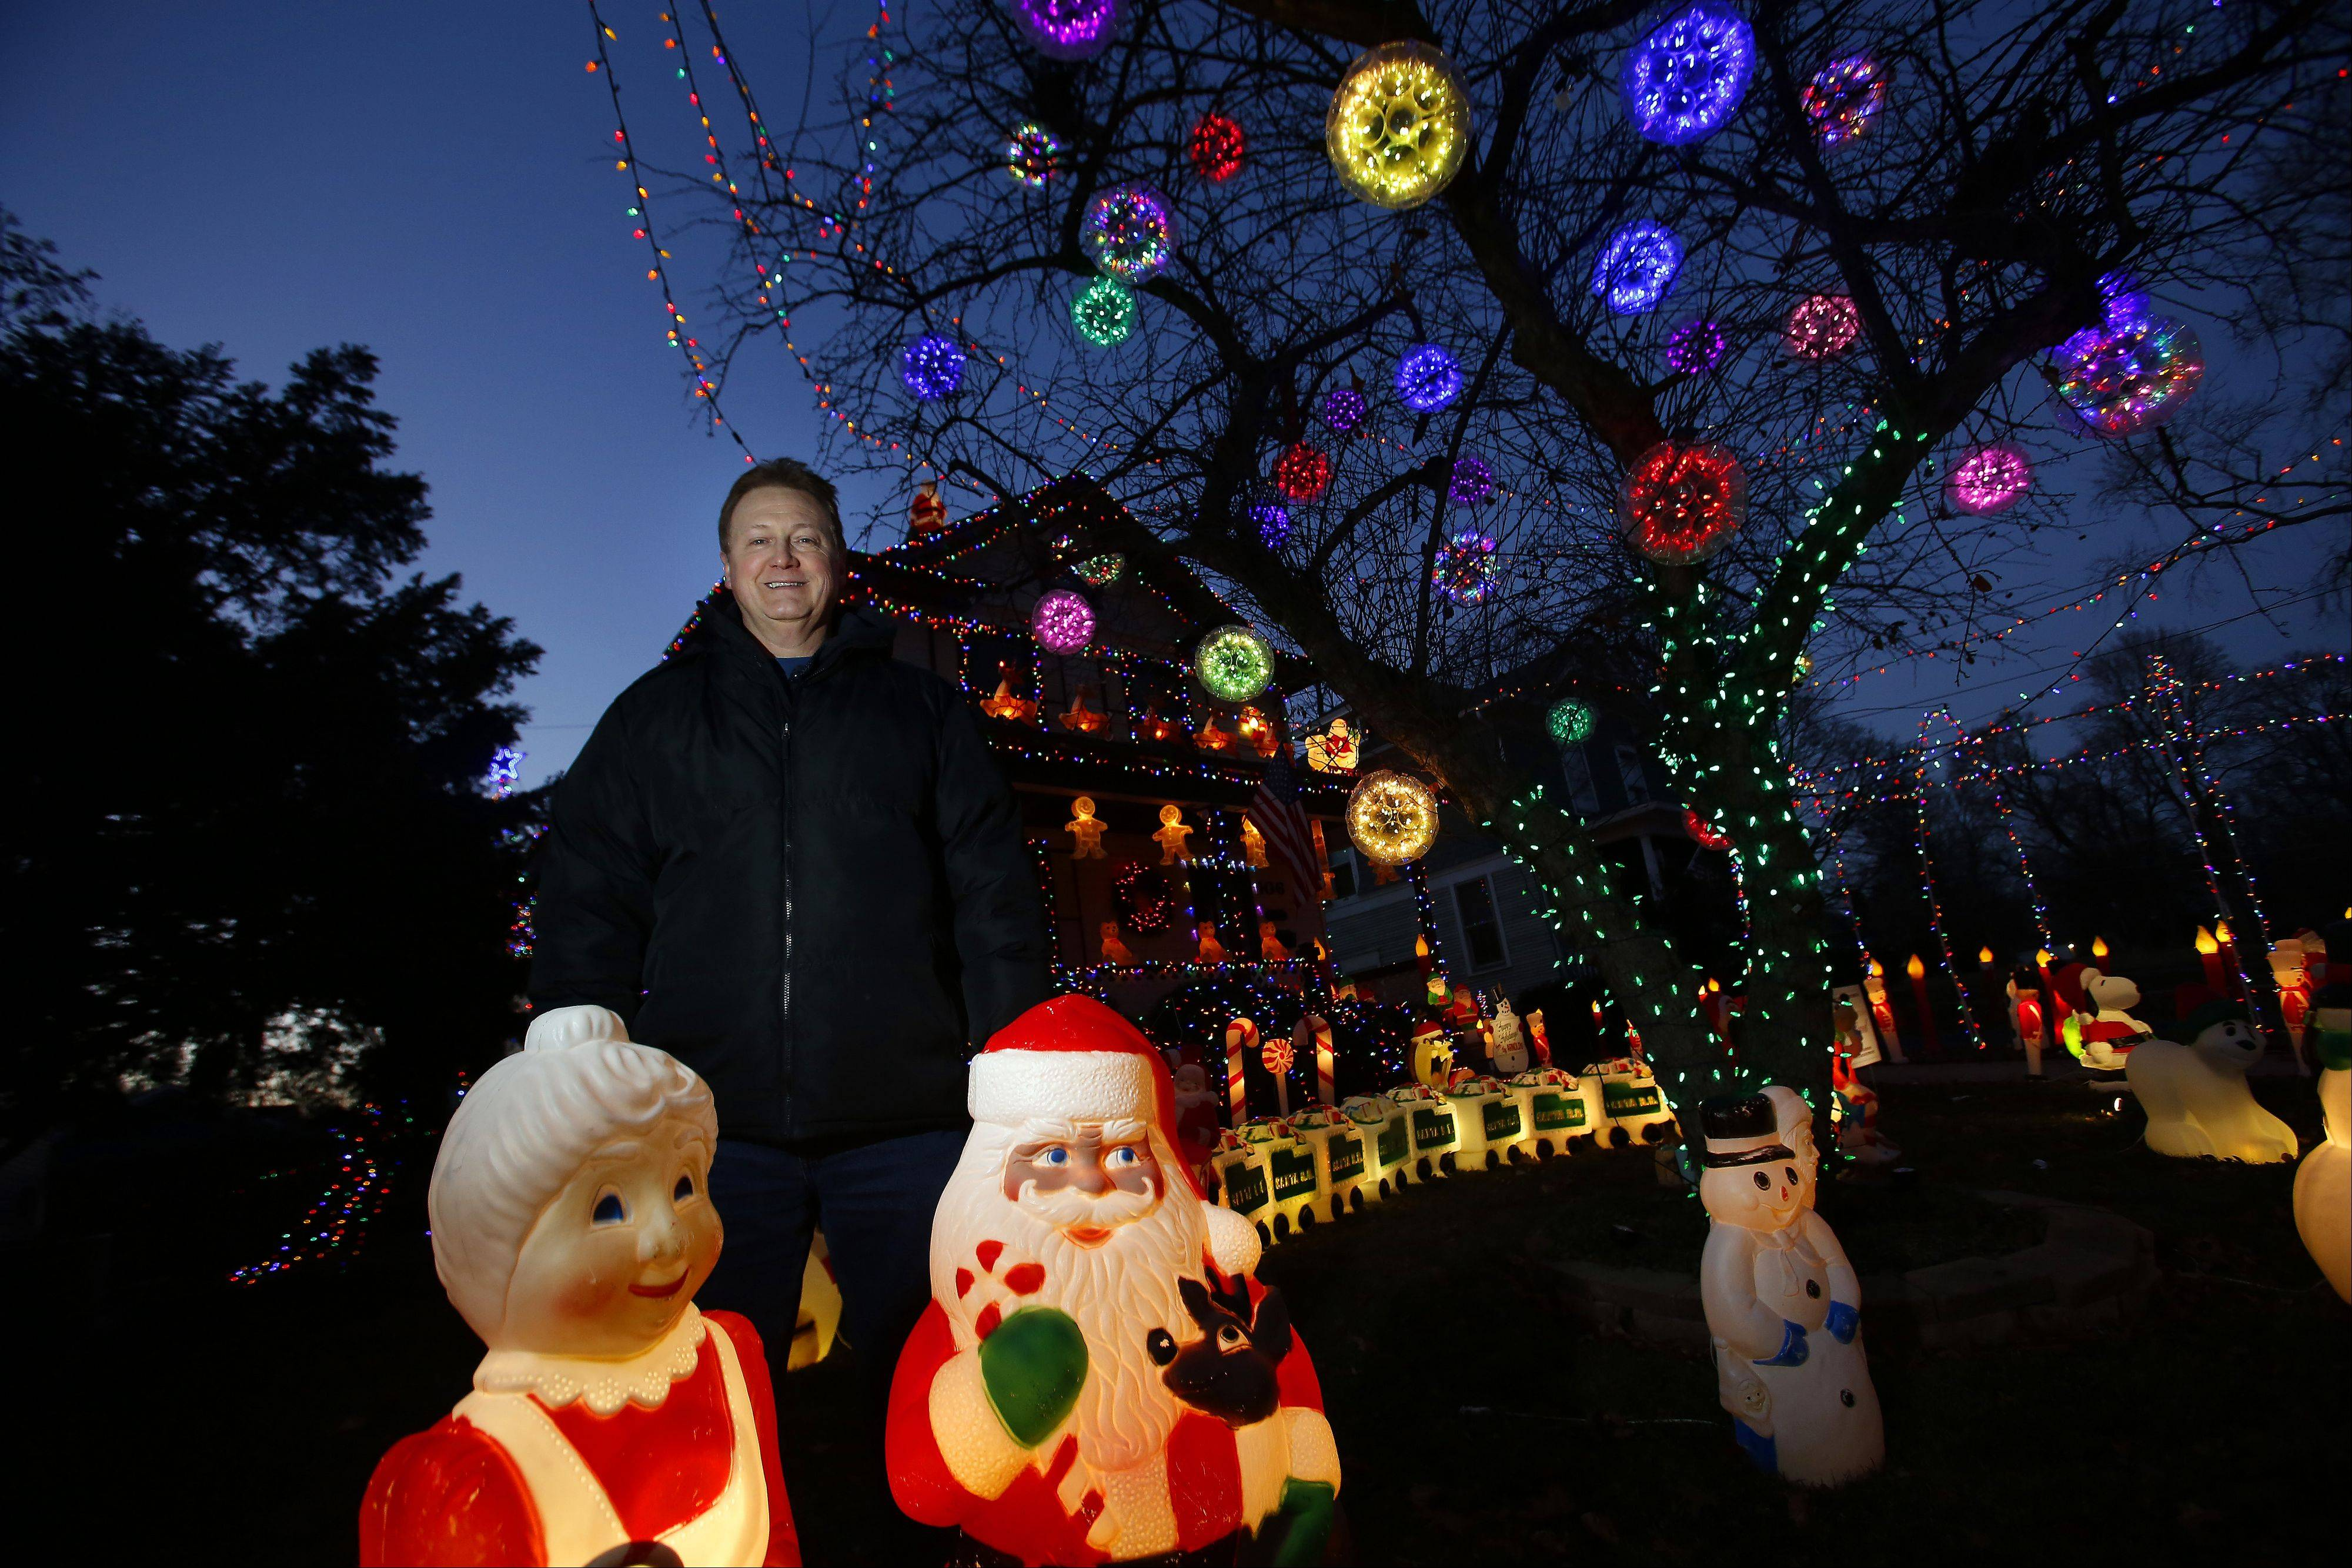 Moving picture: Elgin man goes big with trains, Christmas lights